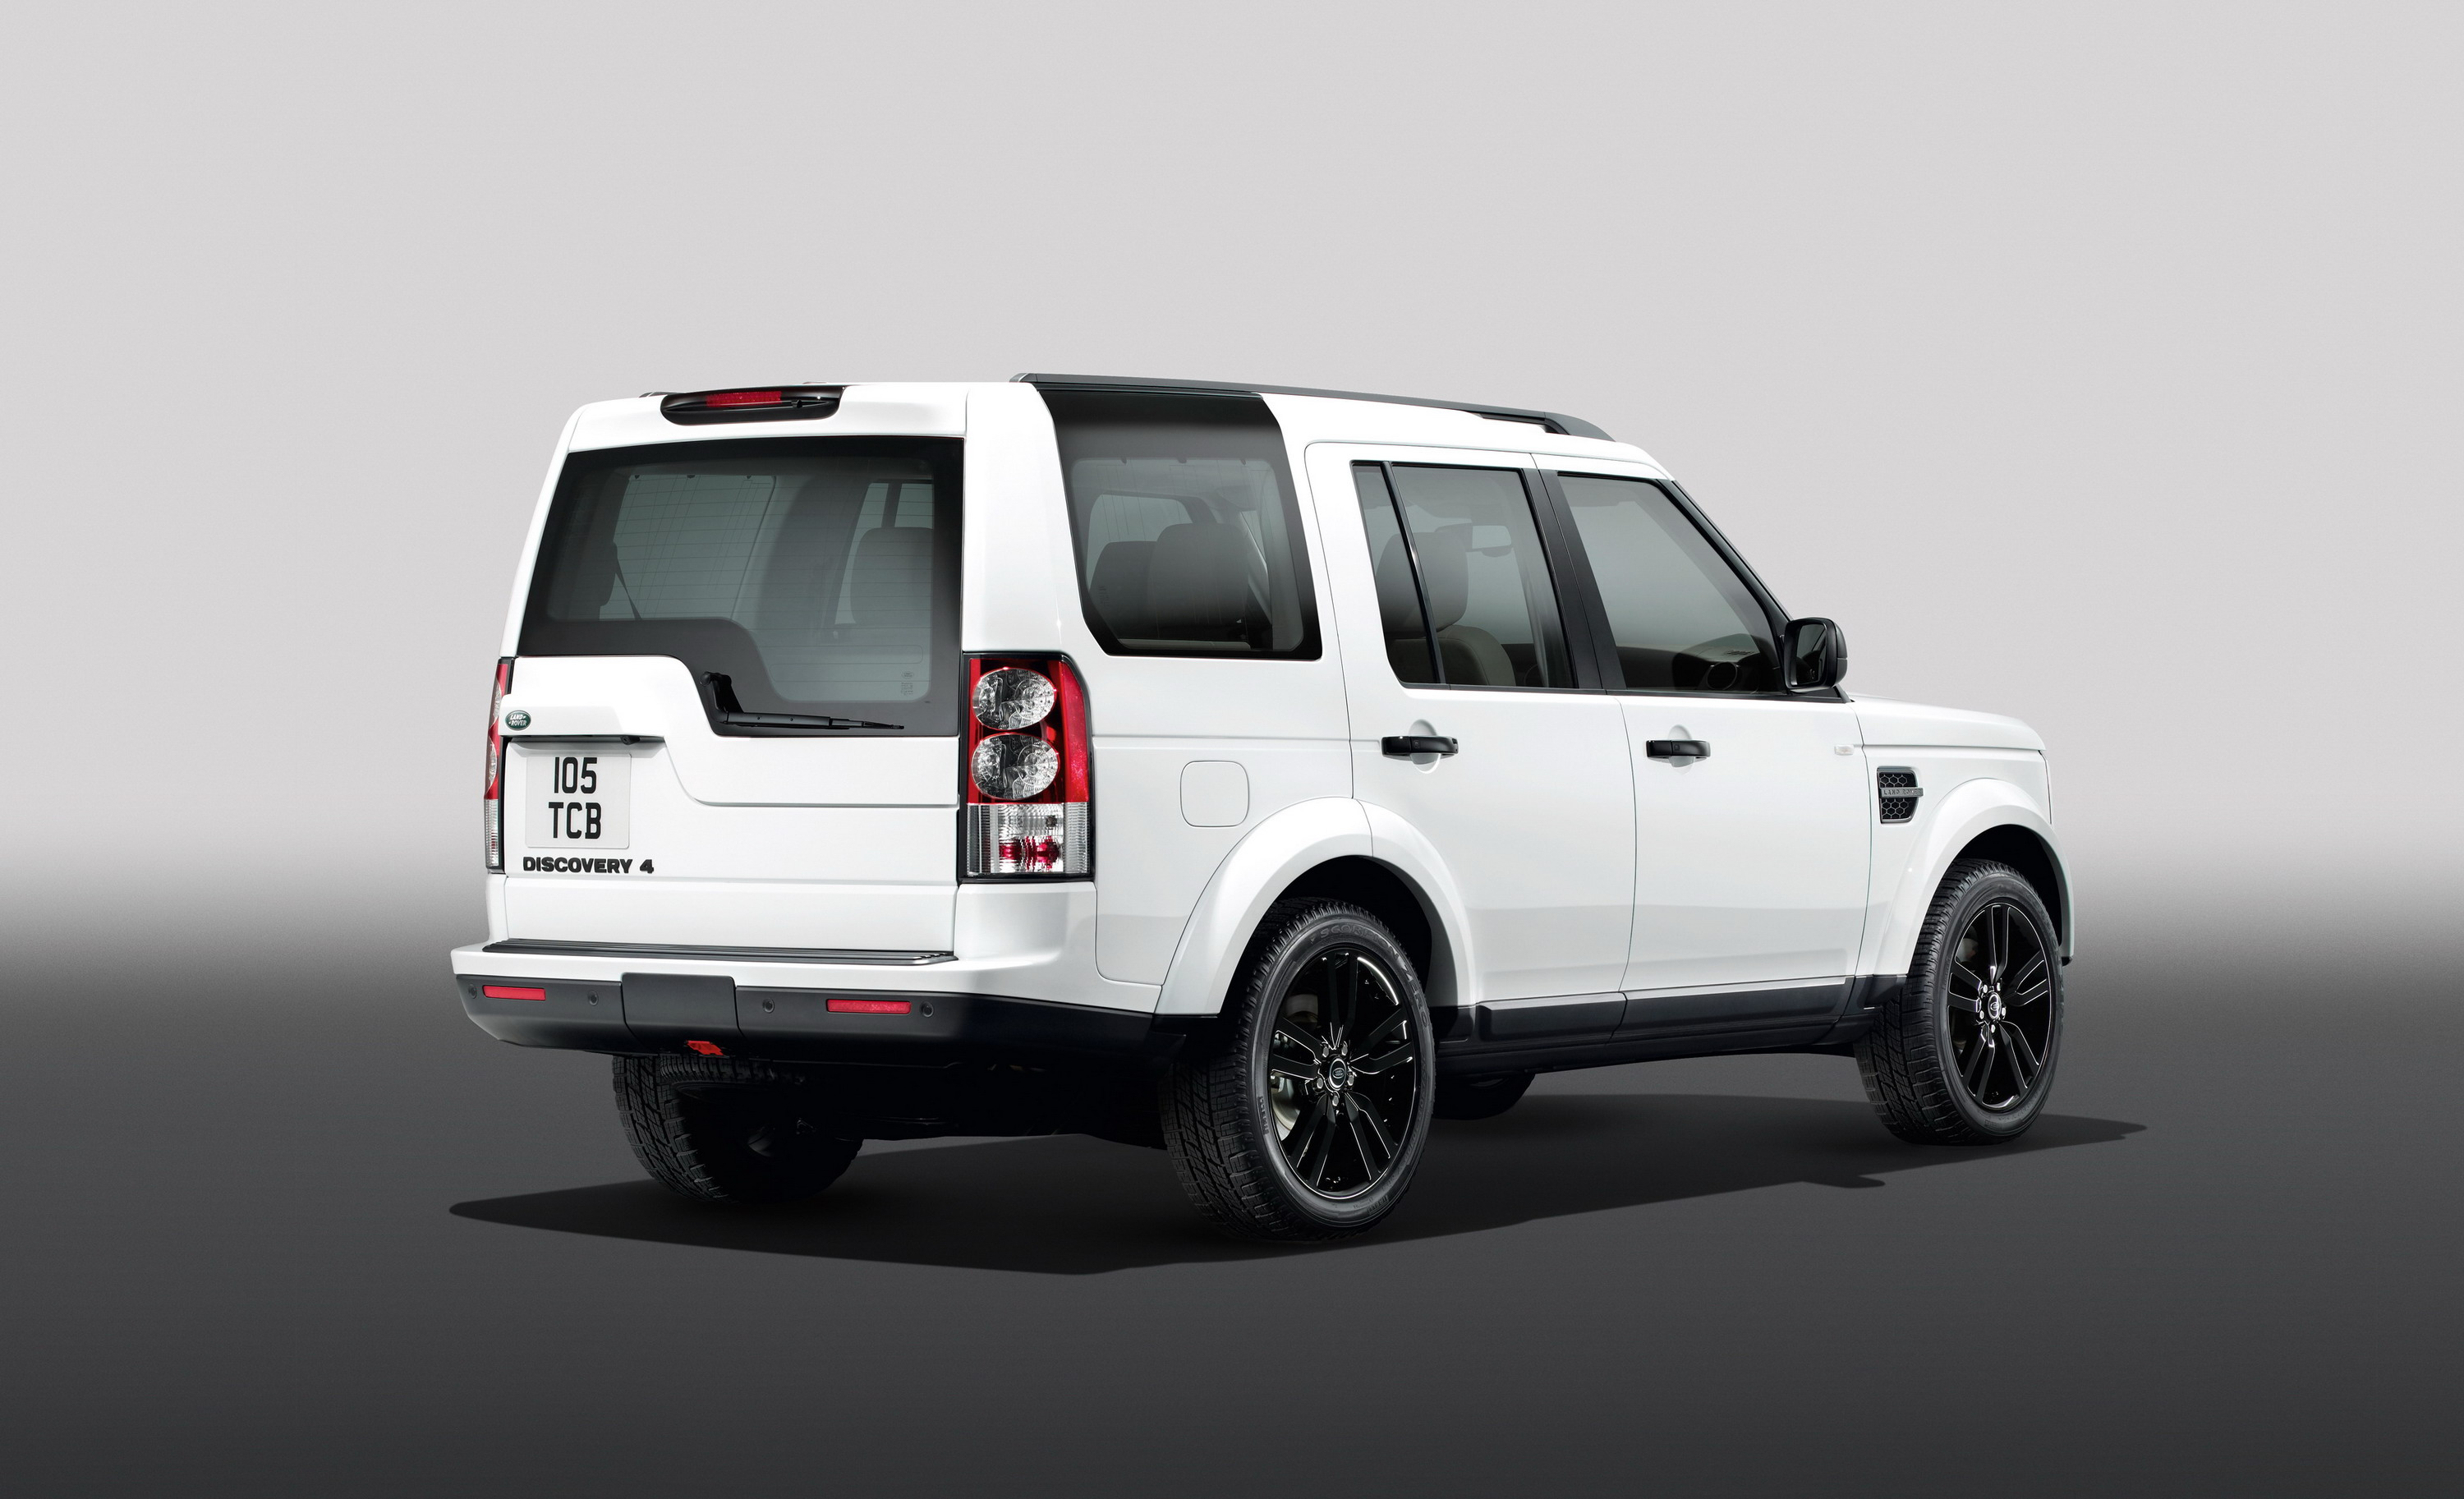 2013 Land Rover Discovery 4 Black Design Packs Review Top Speed